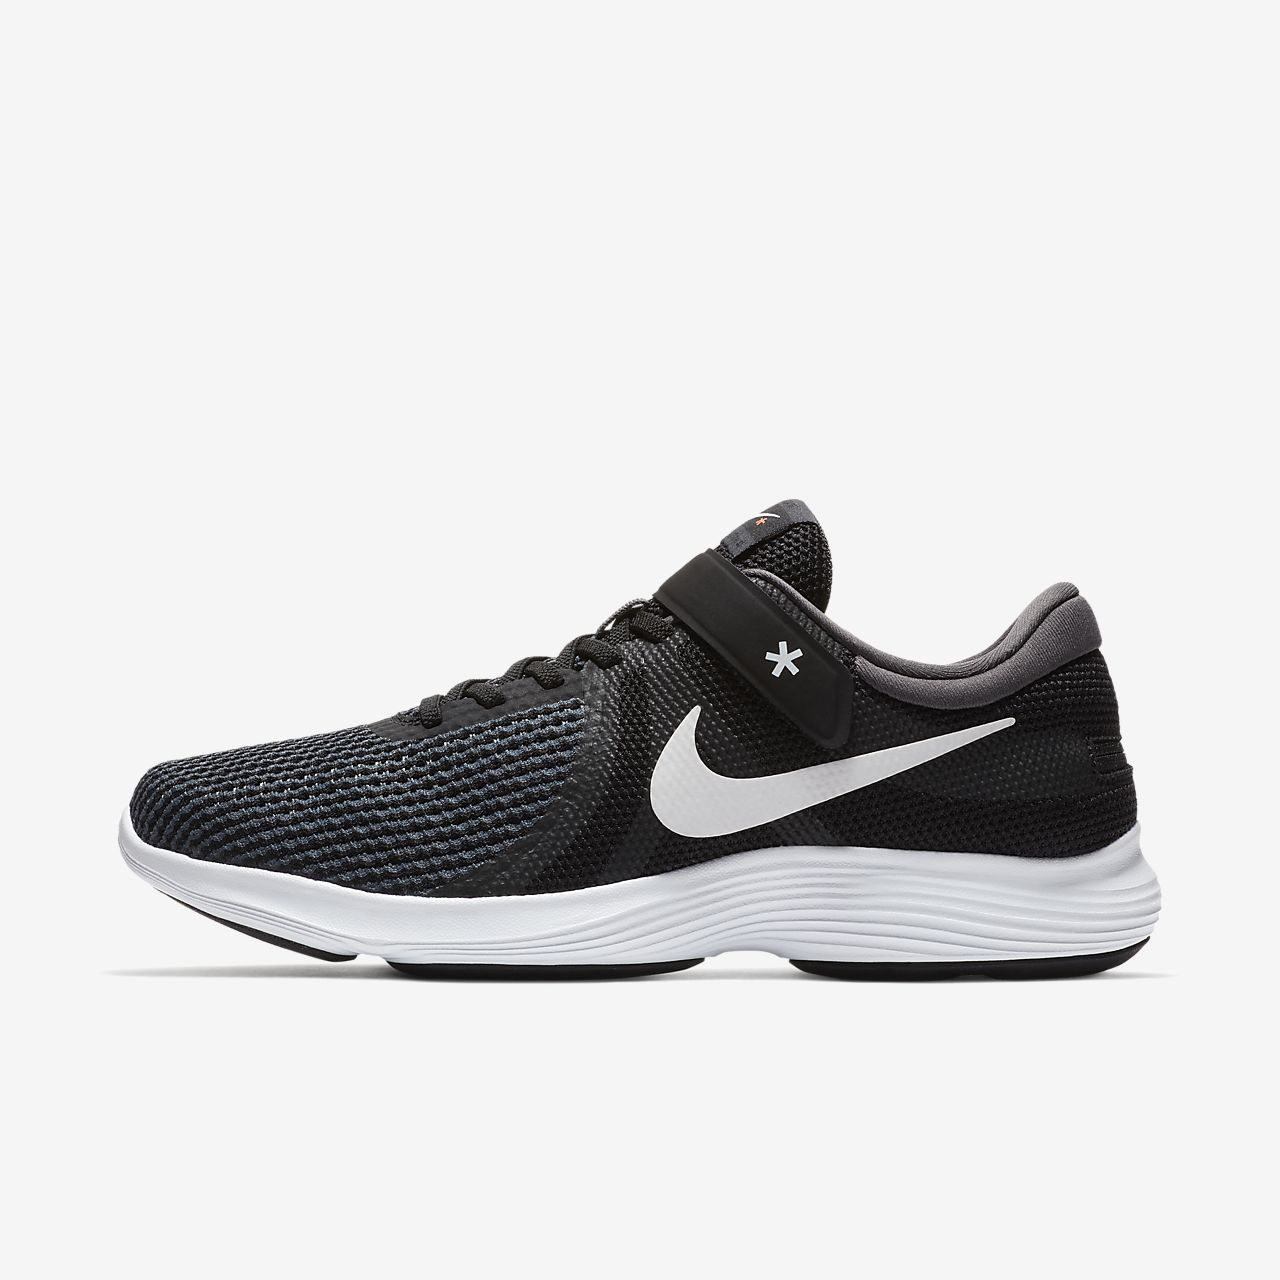 premium selection f6c11 f4628 ... denmark neutral running shoes. nike 5b0be 920cb